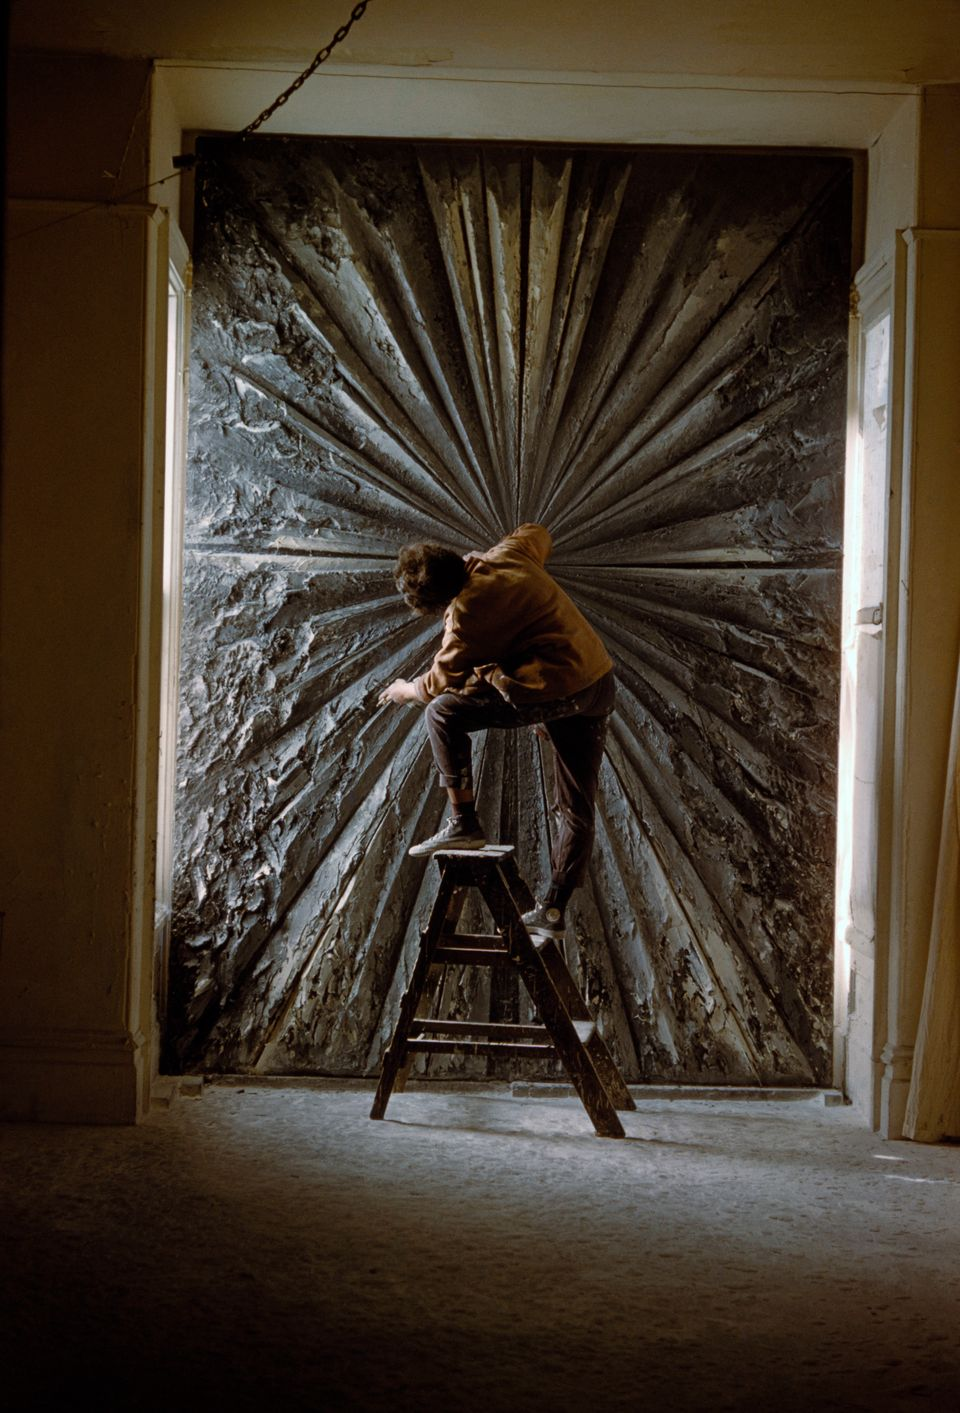 Burt Glinn, Jay DeFeo working on The Rose, 1960; © 2012 Burt Glinn/Magnum Photos